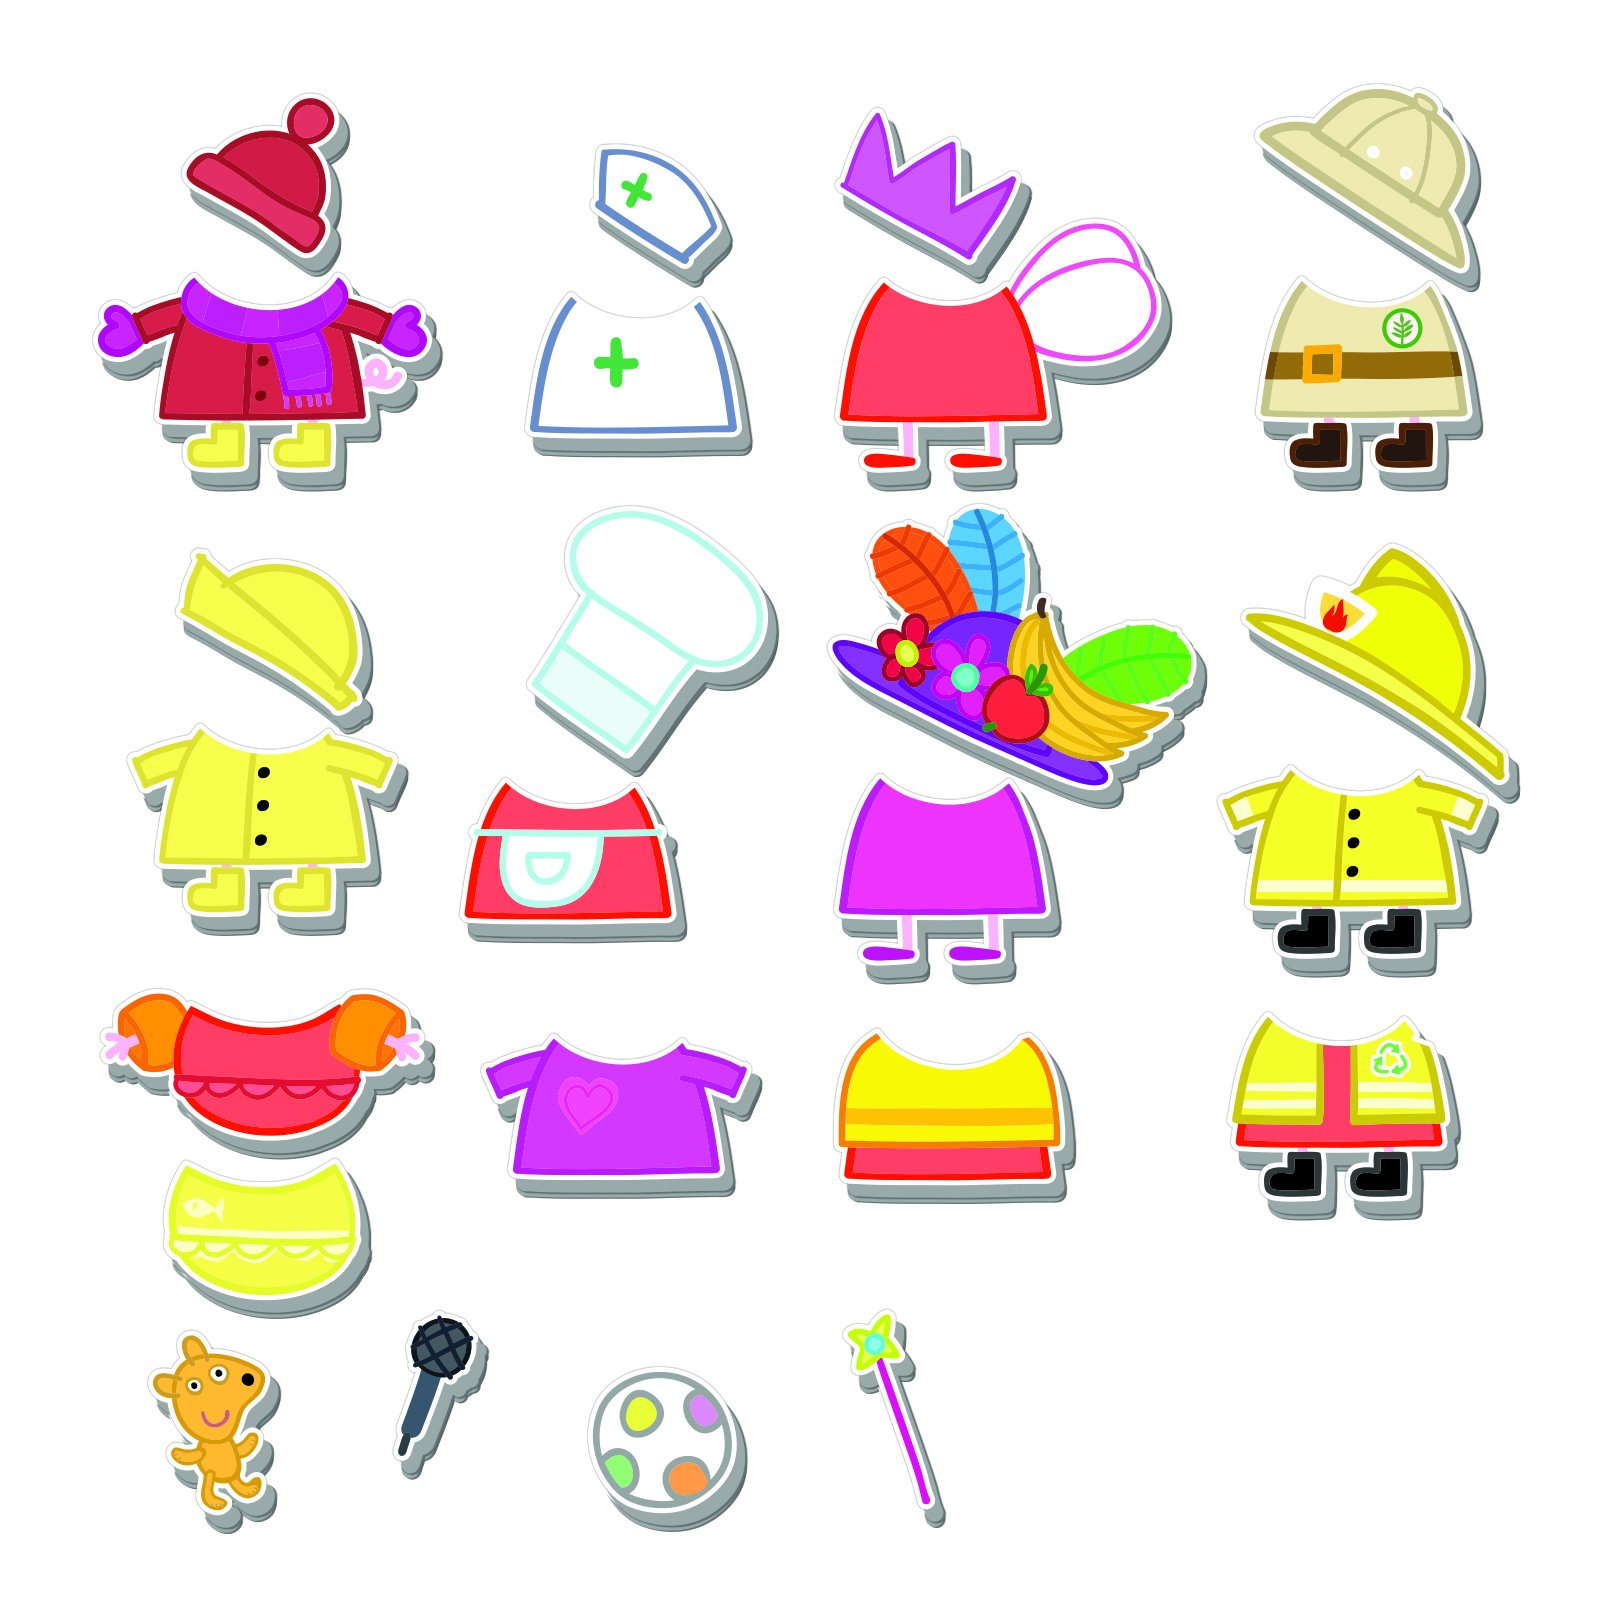 Peppa Pig Magnetic Wood Dress Up Puzzle (25 Piece) by Peppa Pig (Image #4)